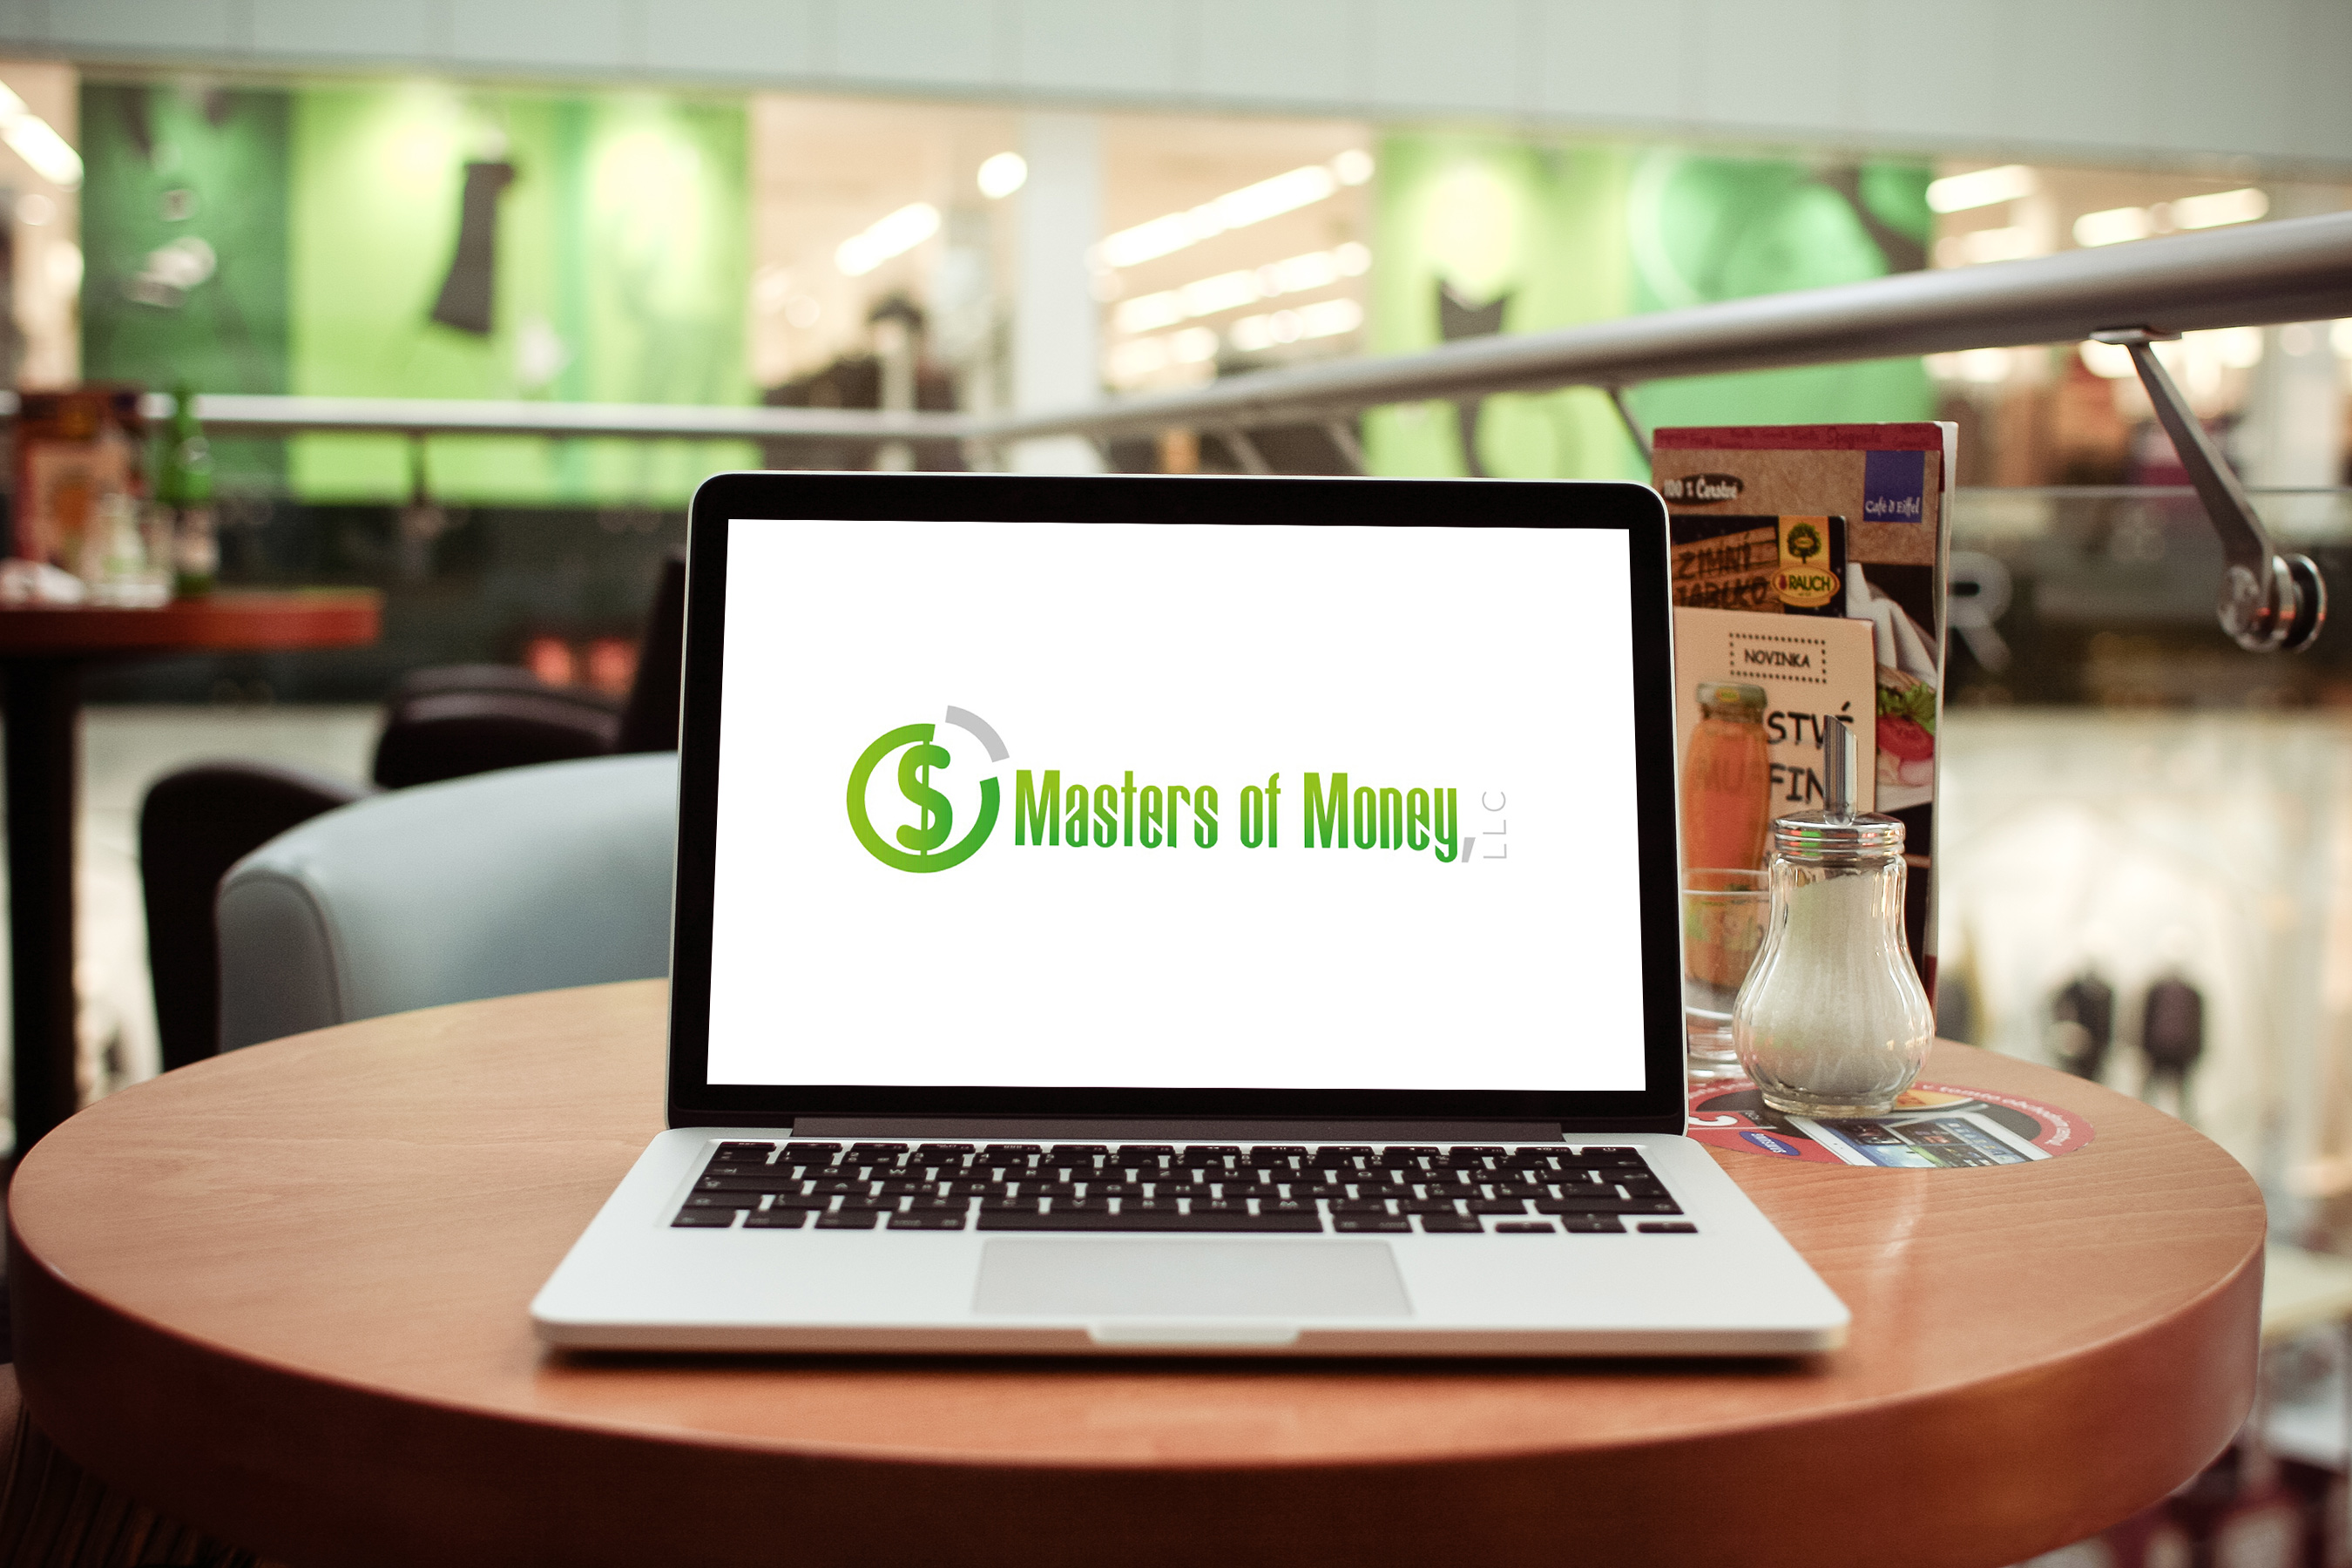 Masters of Money LLC Laptop Screensaver Picture